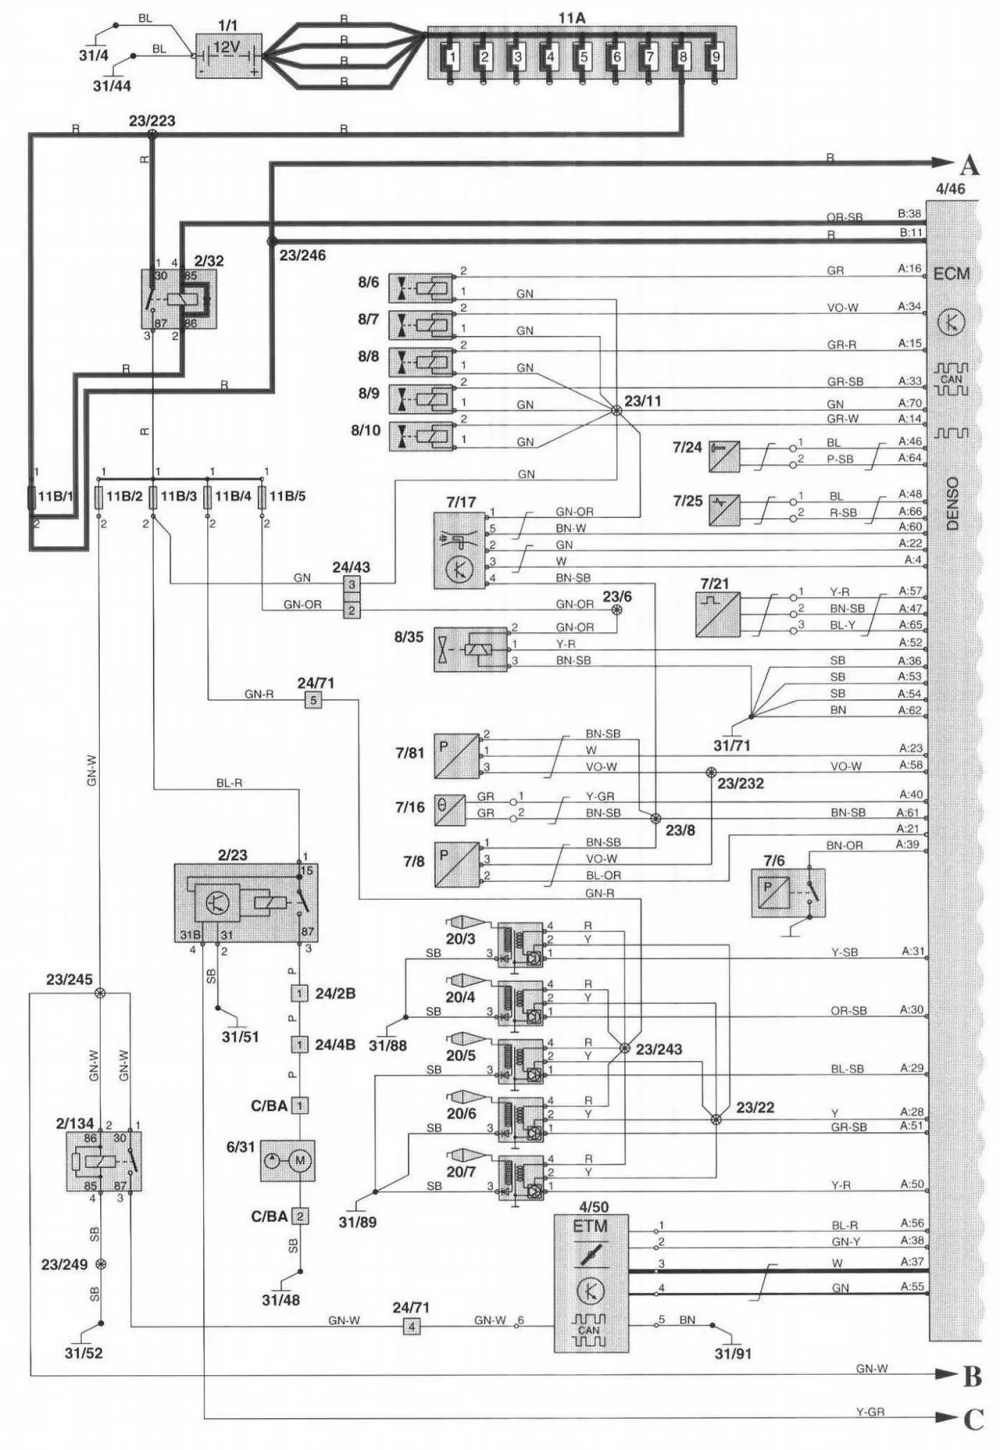 medium resolution of 2003 volvo s80 wiring diagram wiring diagram paper 2003 volvo fuse diagram wiring diagram expert 2003